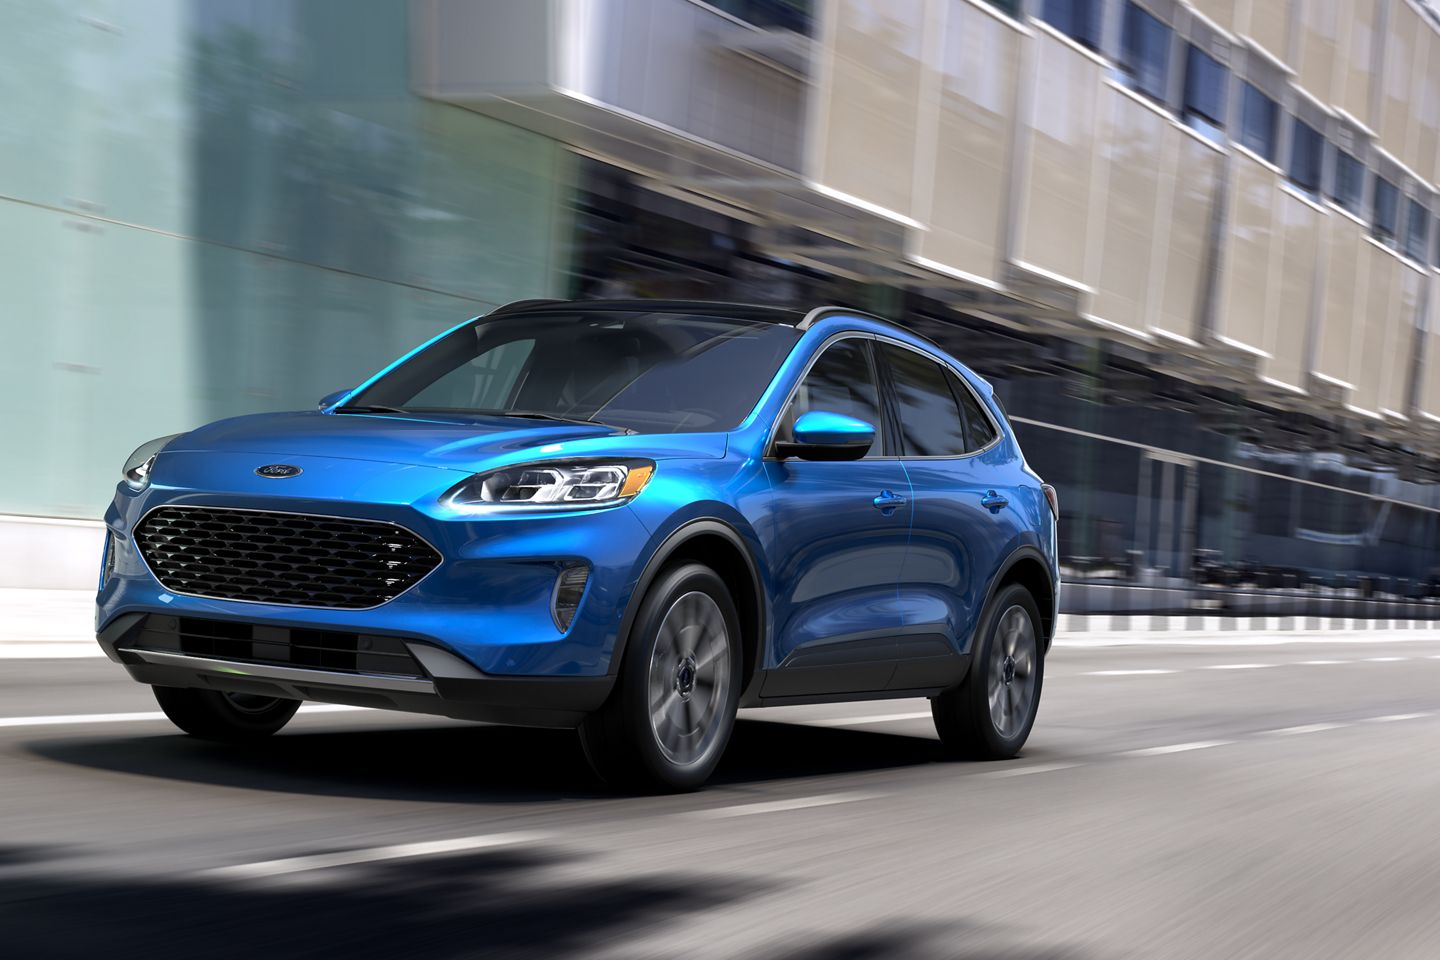 2020 Ford Escape Front Blue Exterior